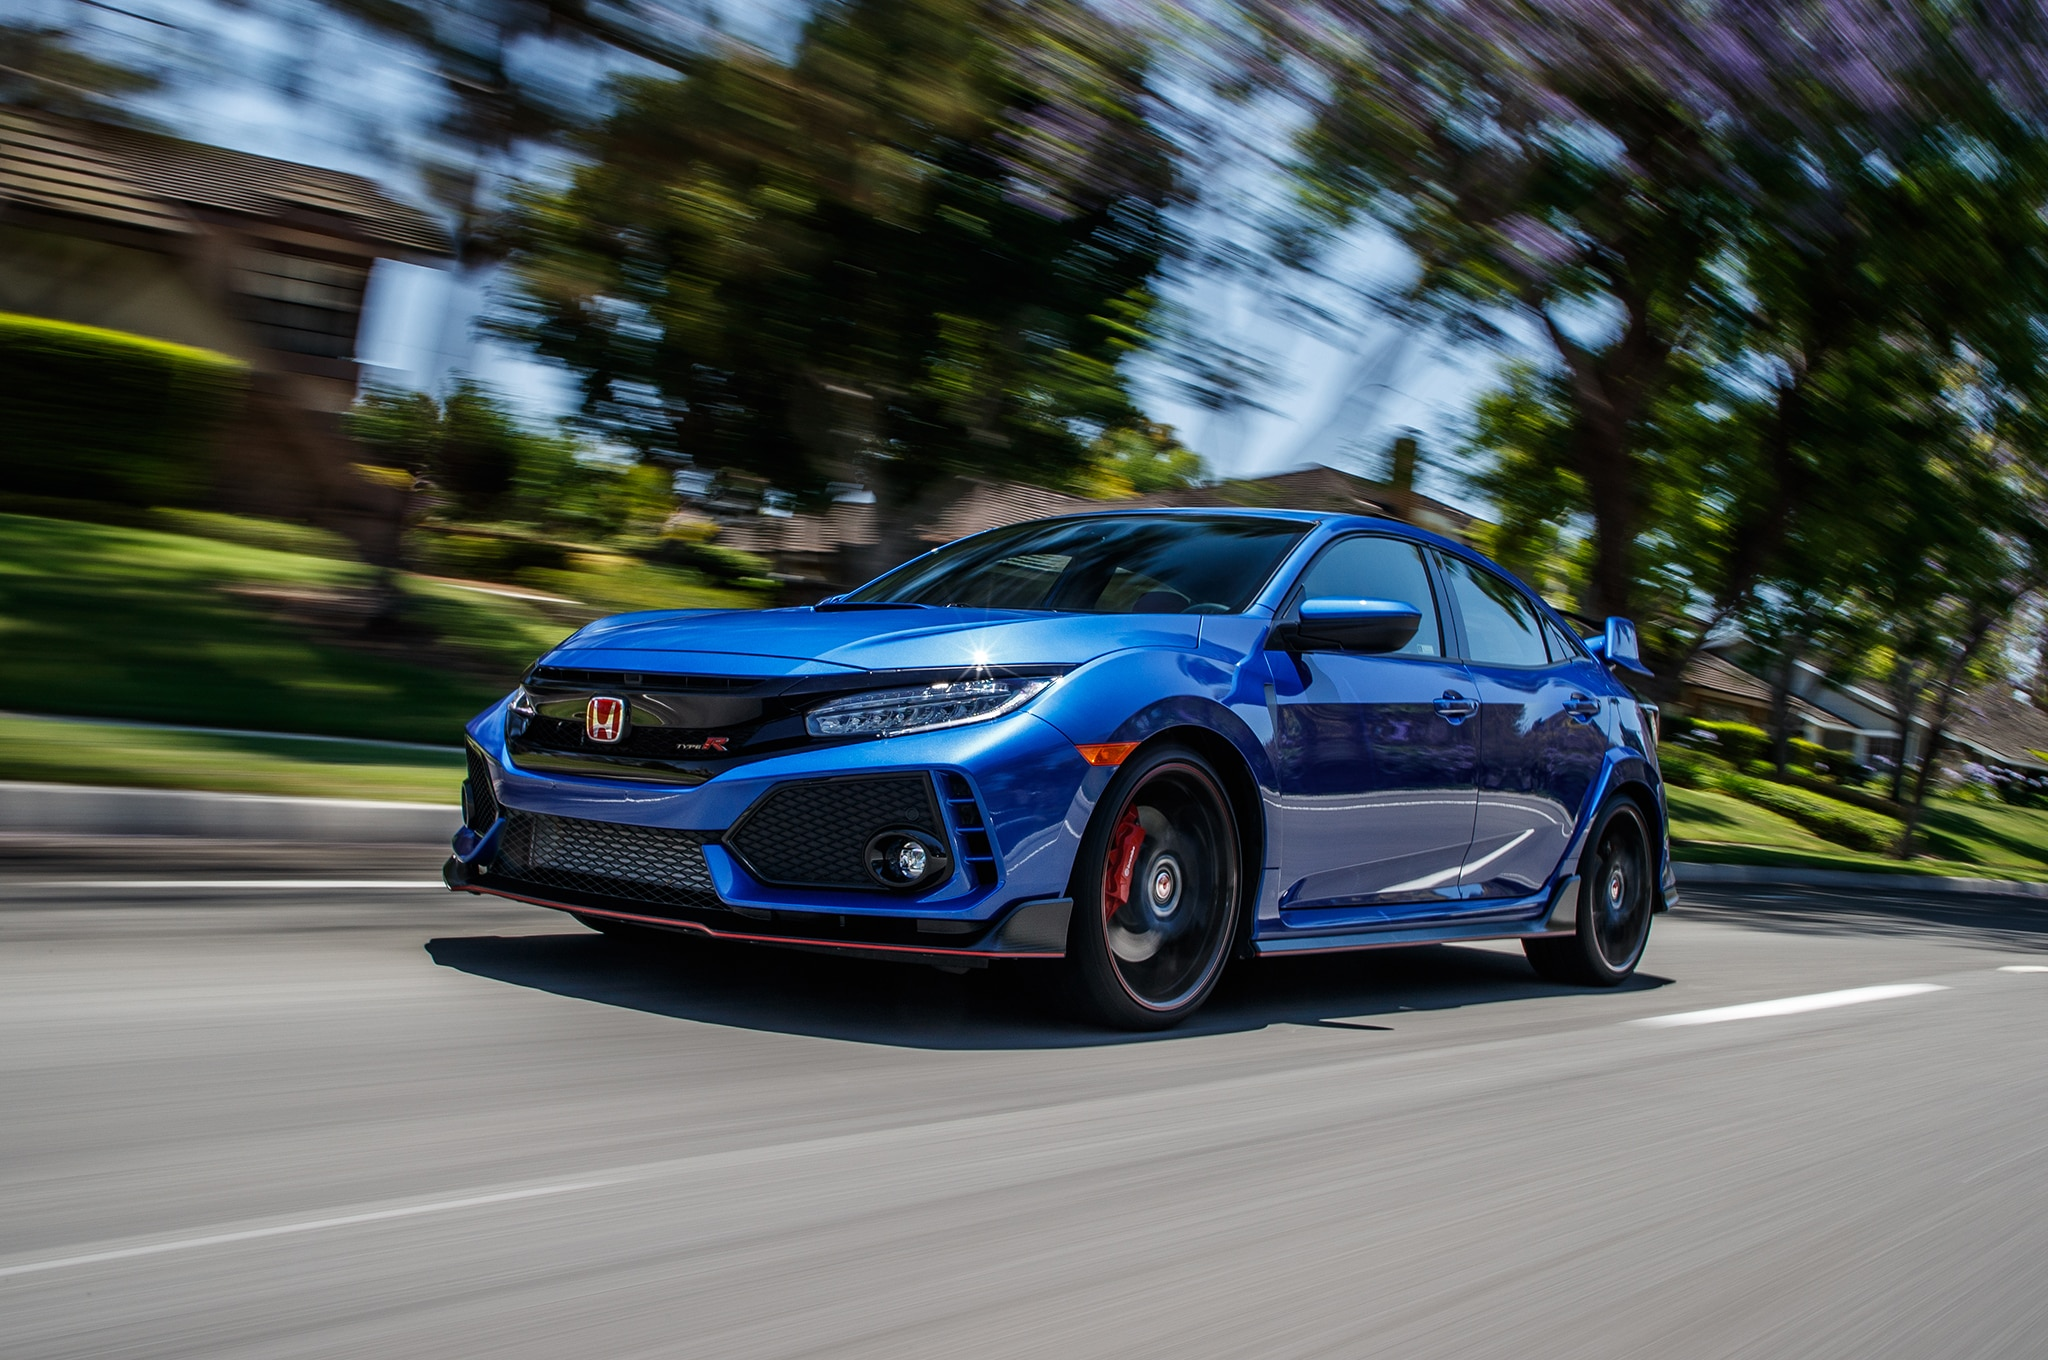 2018 Honda Civic Type R Front Three Quarter In Motion 7